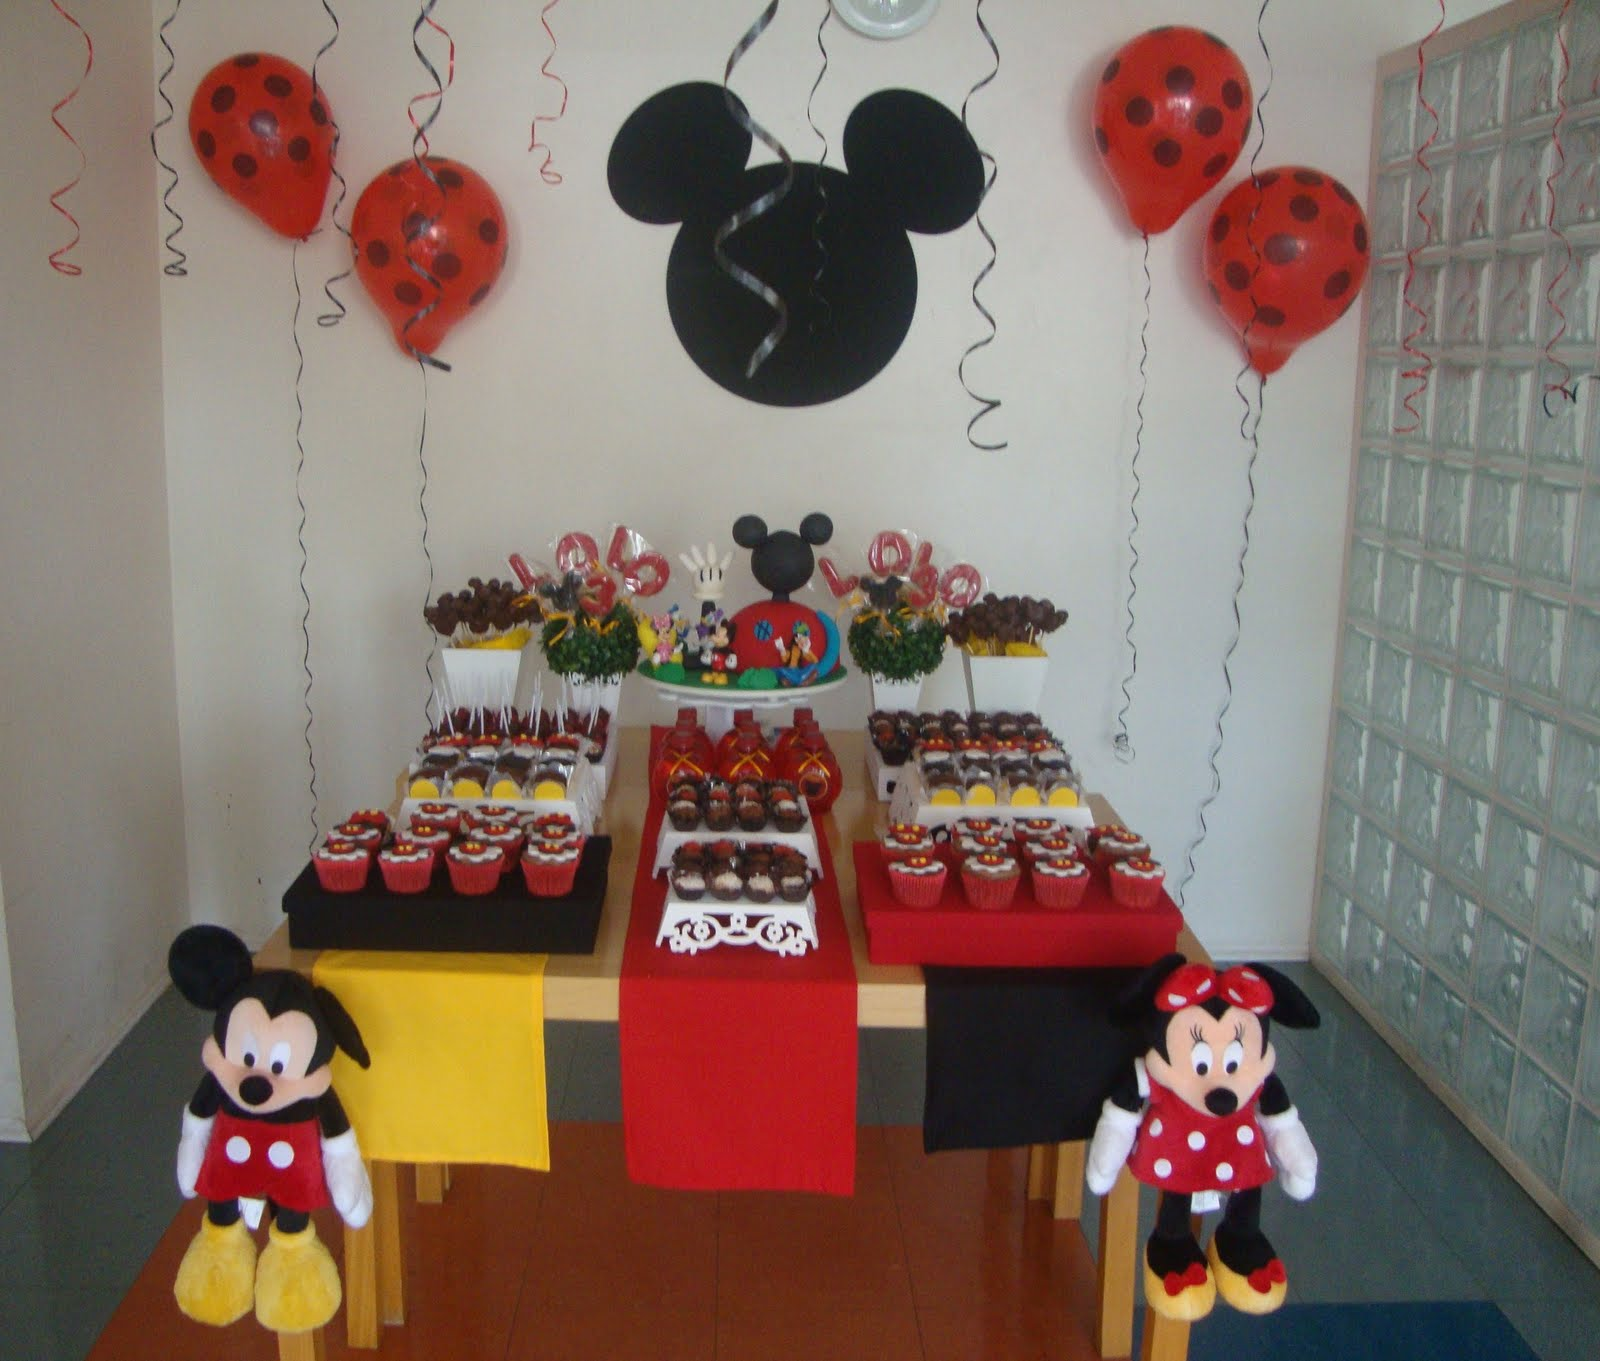 ANIVERSARIO MICKEY MOUSE   By Tatiana Bonotto